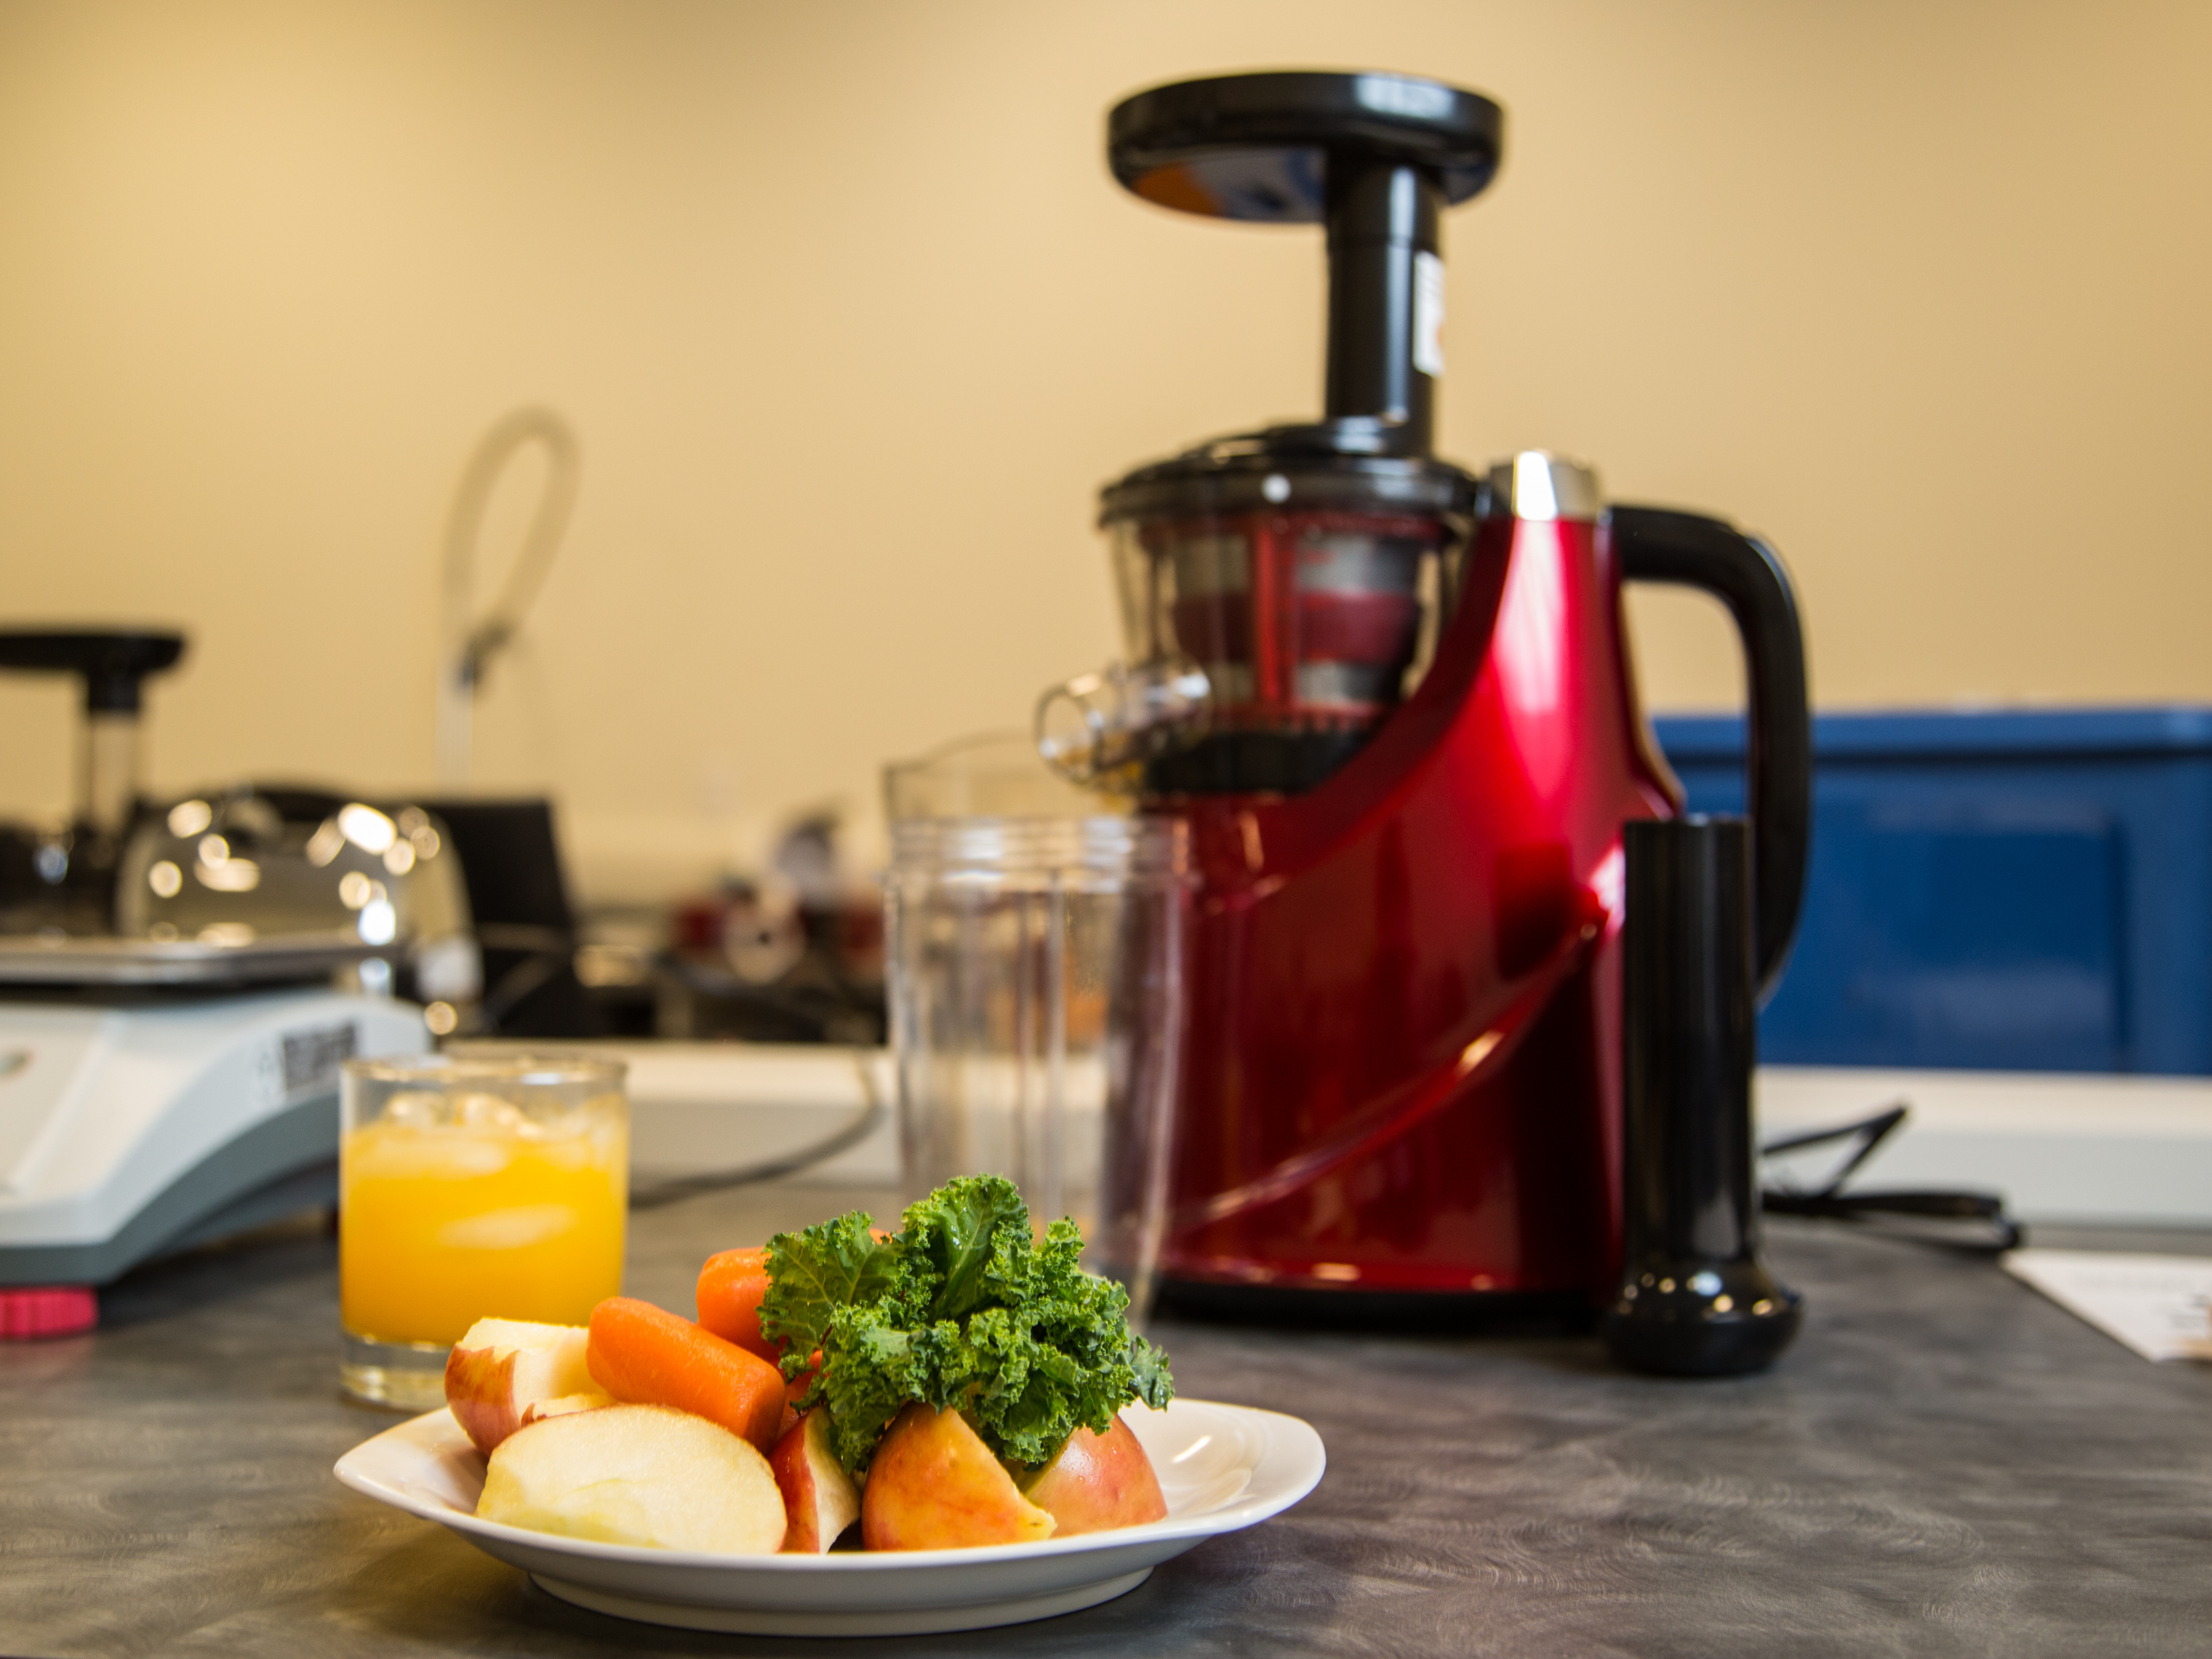 Vonshef Slow Juicer Review : vonShef Premium Slow Masticating Juicer review - CNET